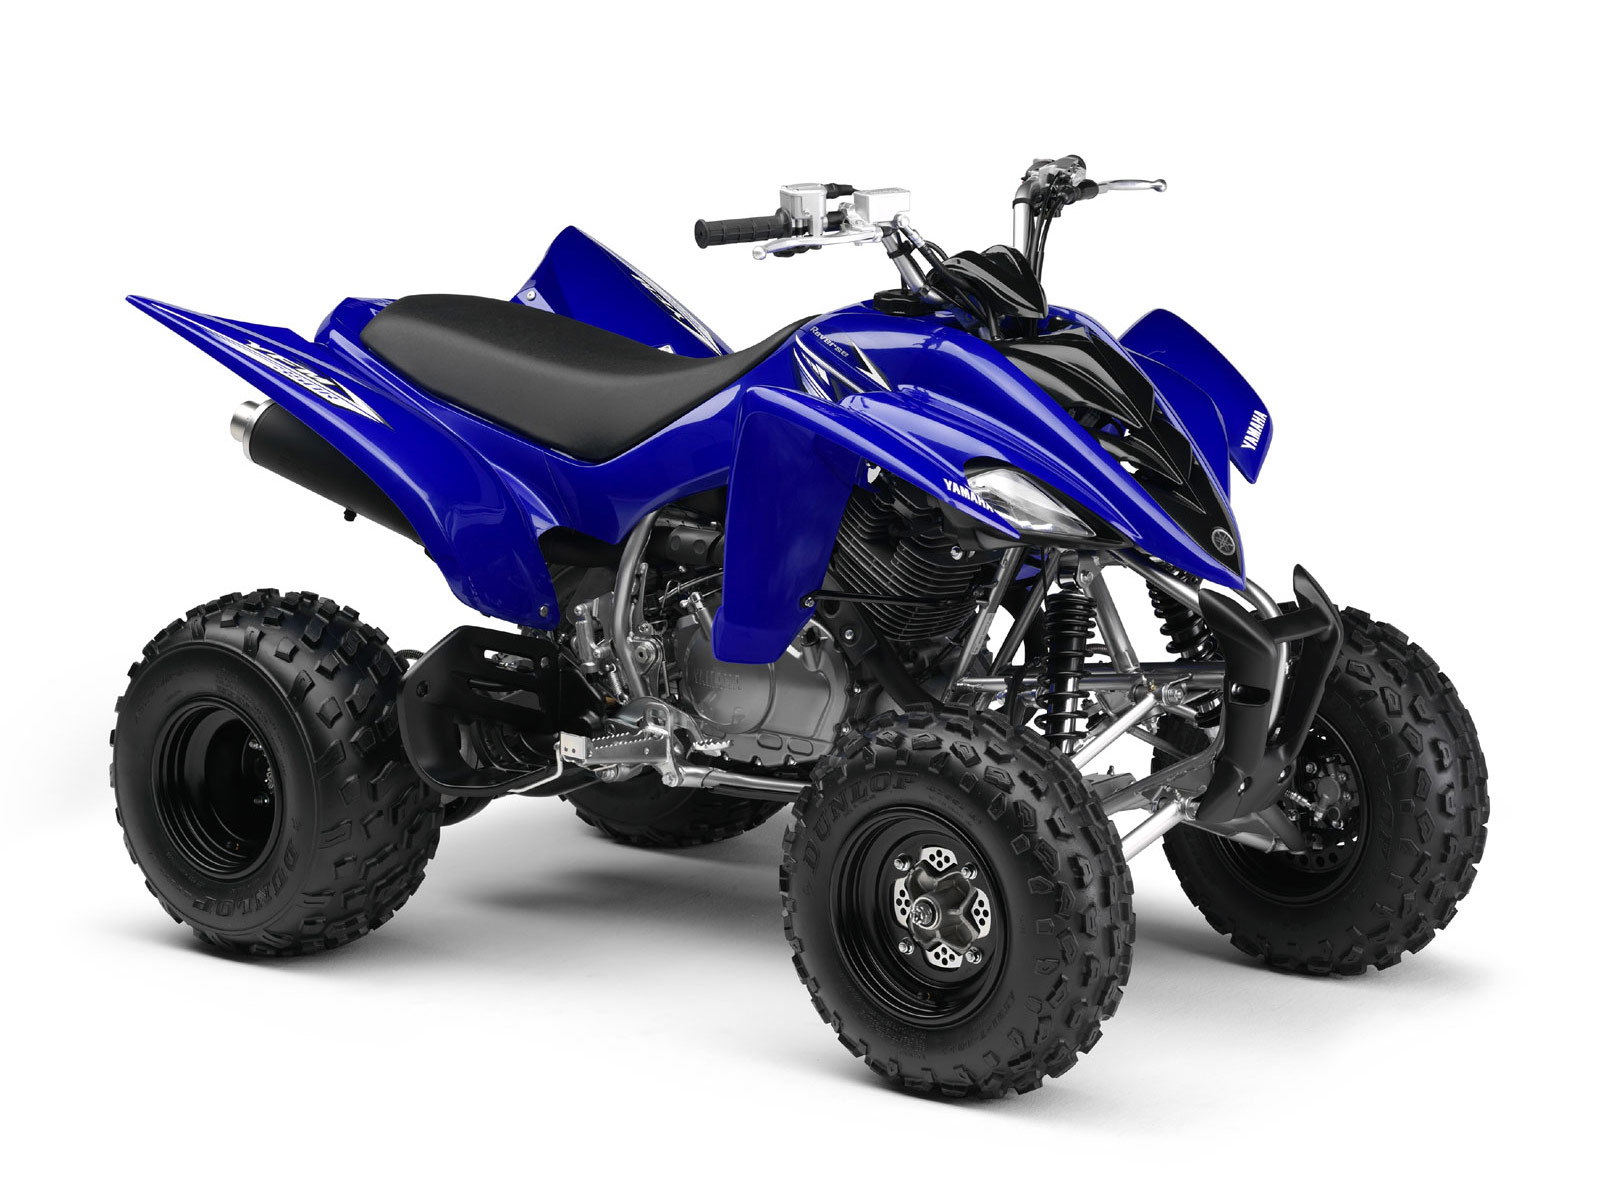 2009 yamaha raptor 350 atv pictures review and specifications. Black Bedroom Furniture Sets. Home Design Ideas